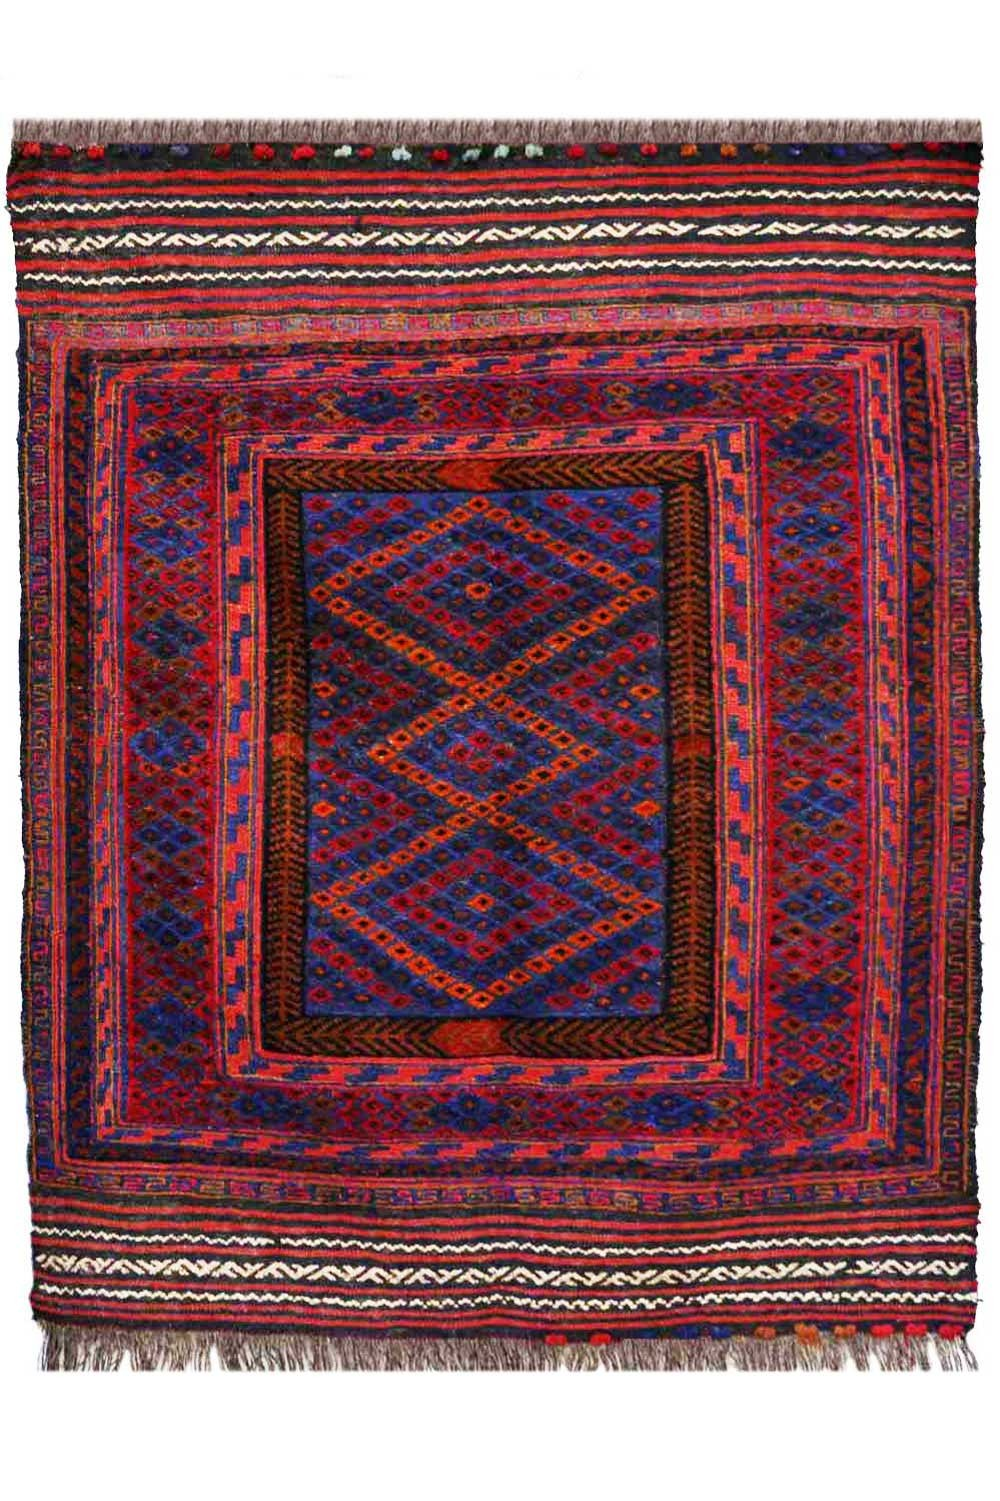 Abstract Kilim Rug Kilim Rugs For Sale At Rugs And Beyond